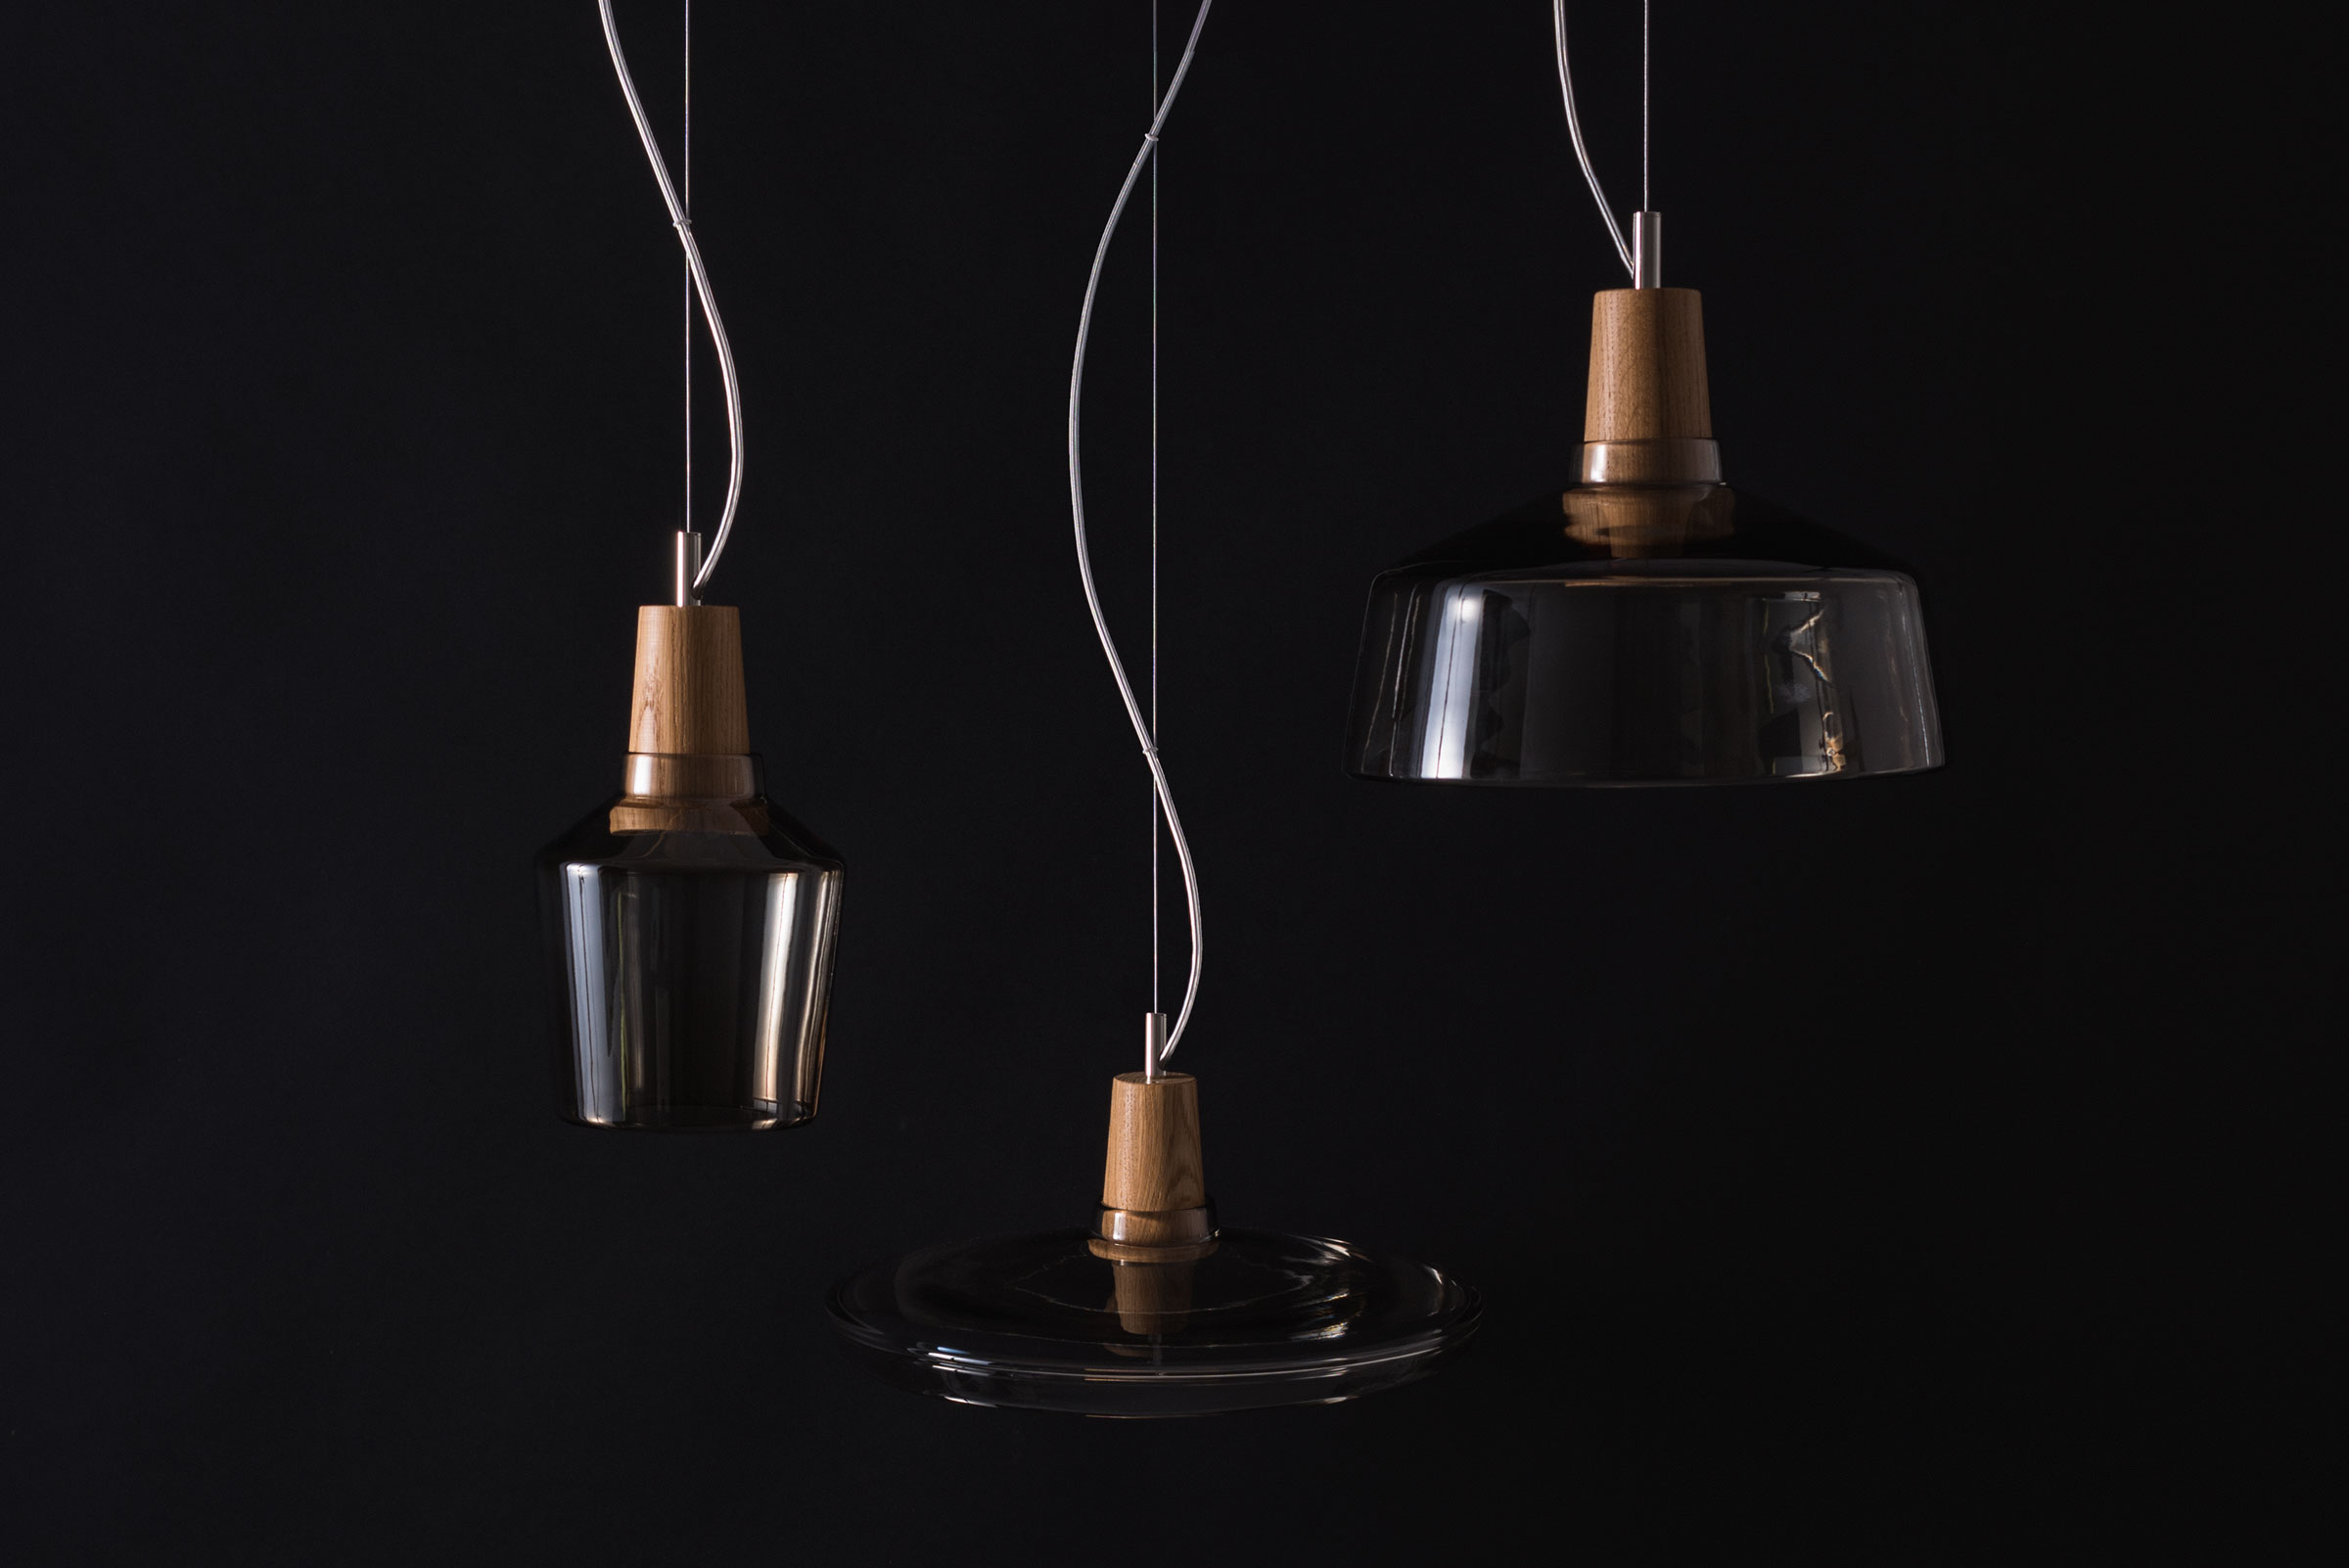 INDUSTRIAL Is A Family Of 3 Lamps Inspired By The Shapes Of Old Traditional Industrial  Lamps. The Lamp Shades Are Hand Blown Crystal Clear Glass. The Shades ...